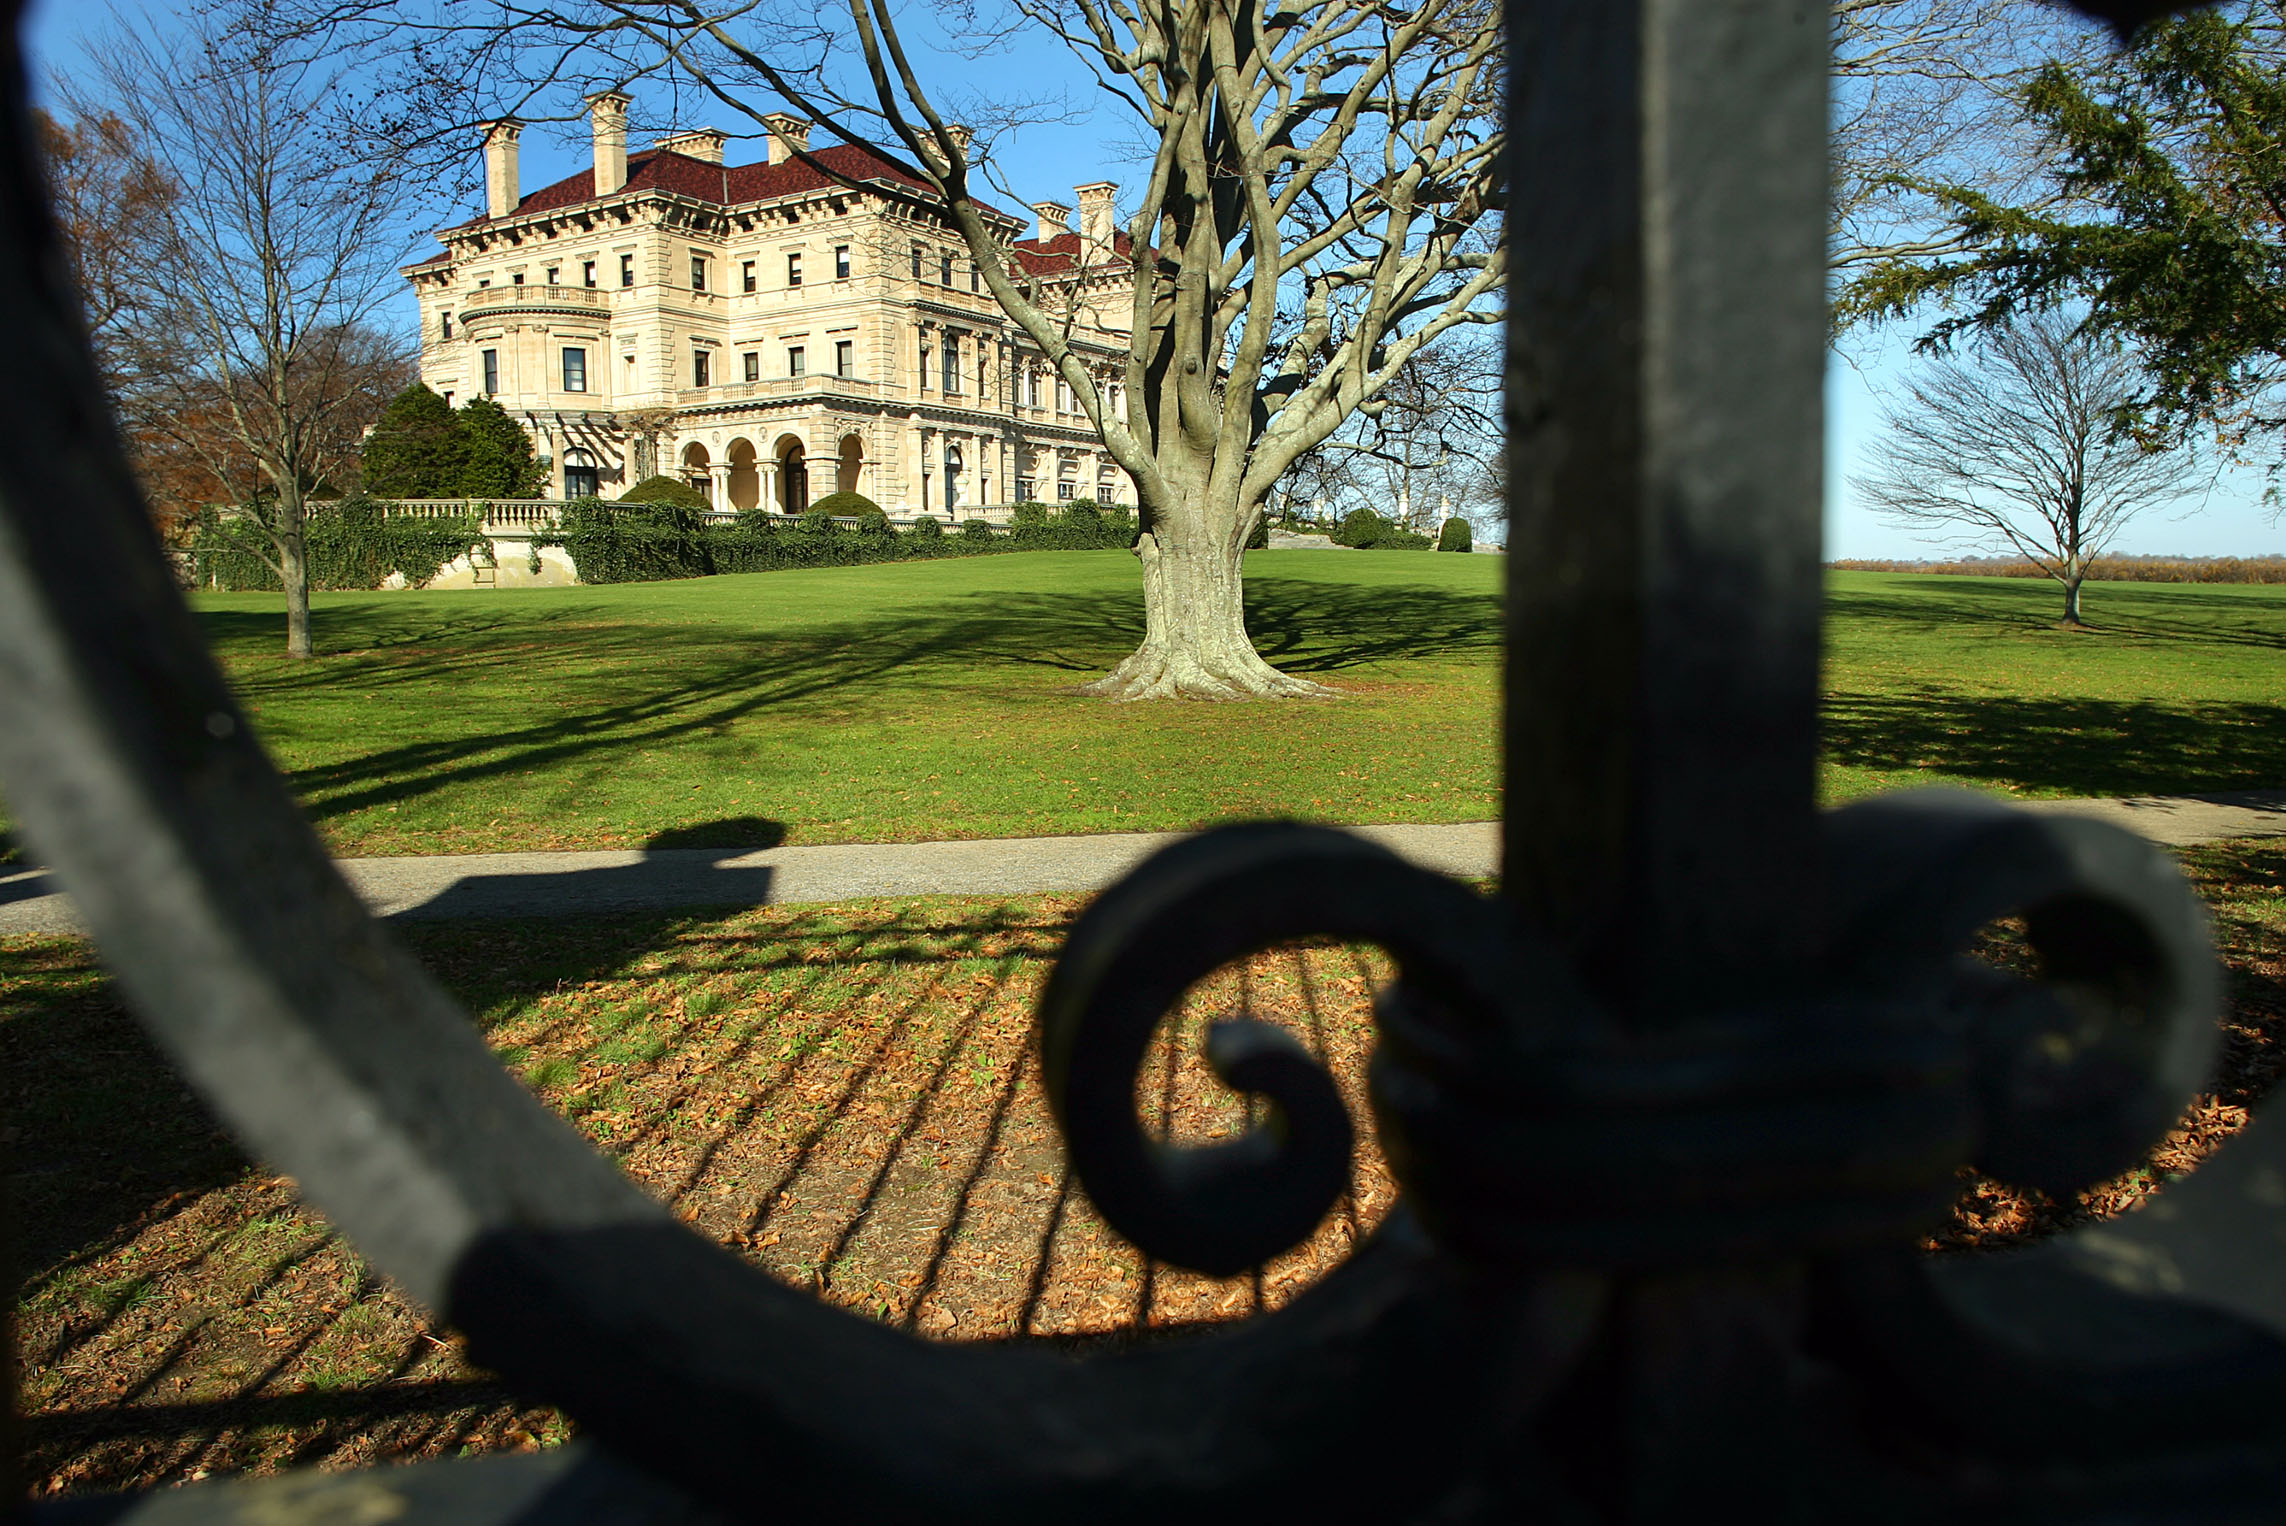 The Breakers mansion, seen through it's ornate wrought iron fence.